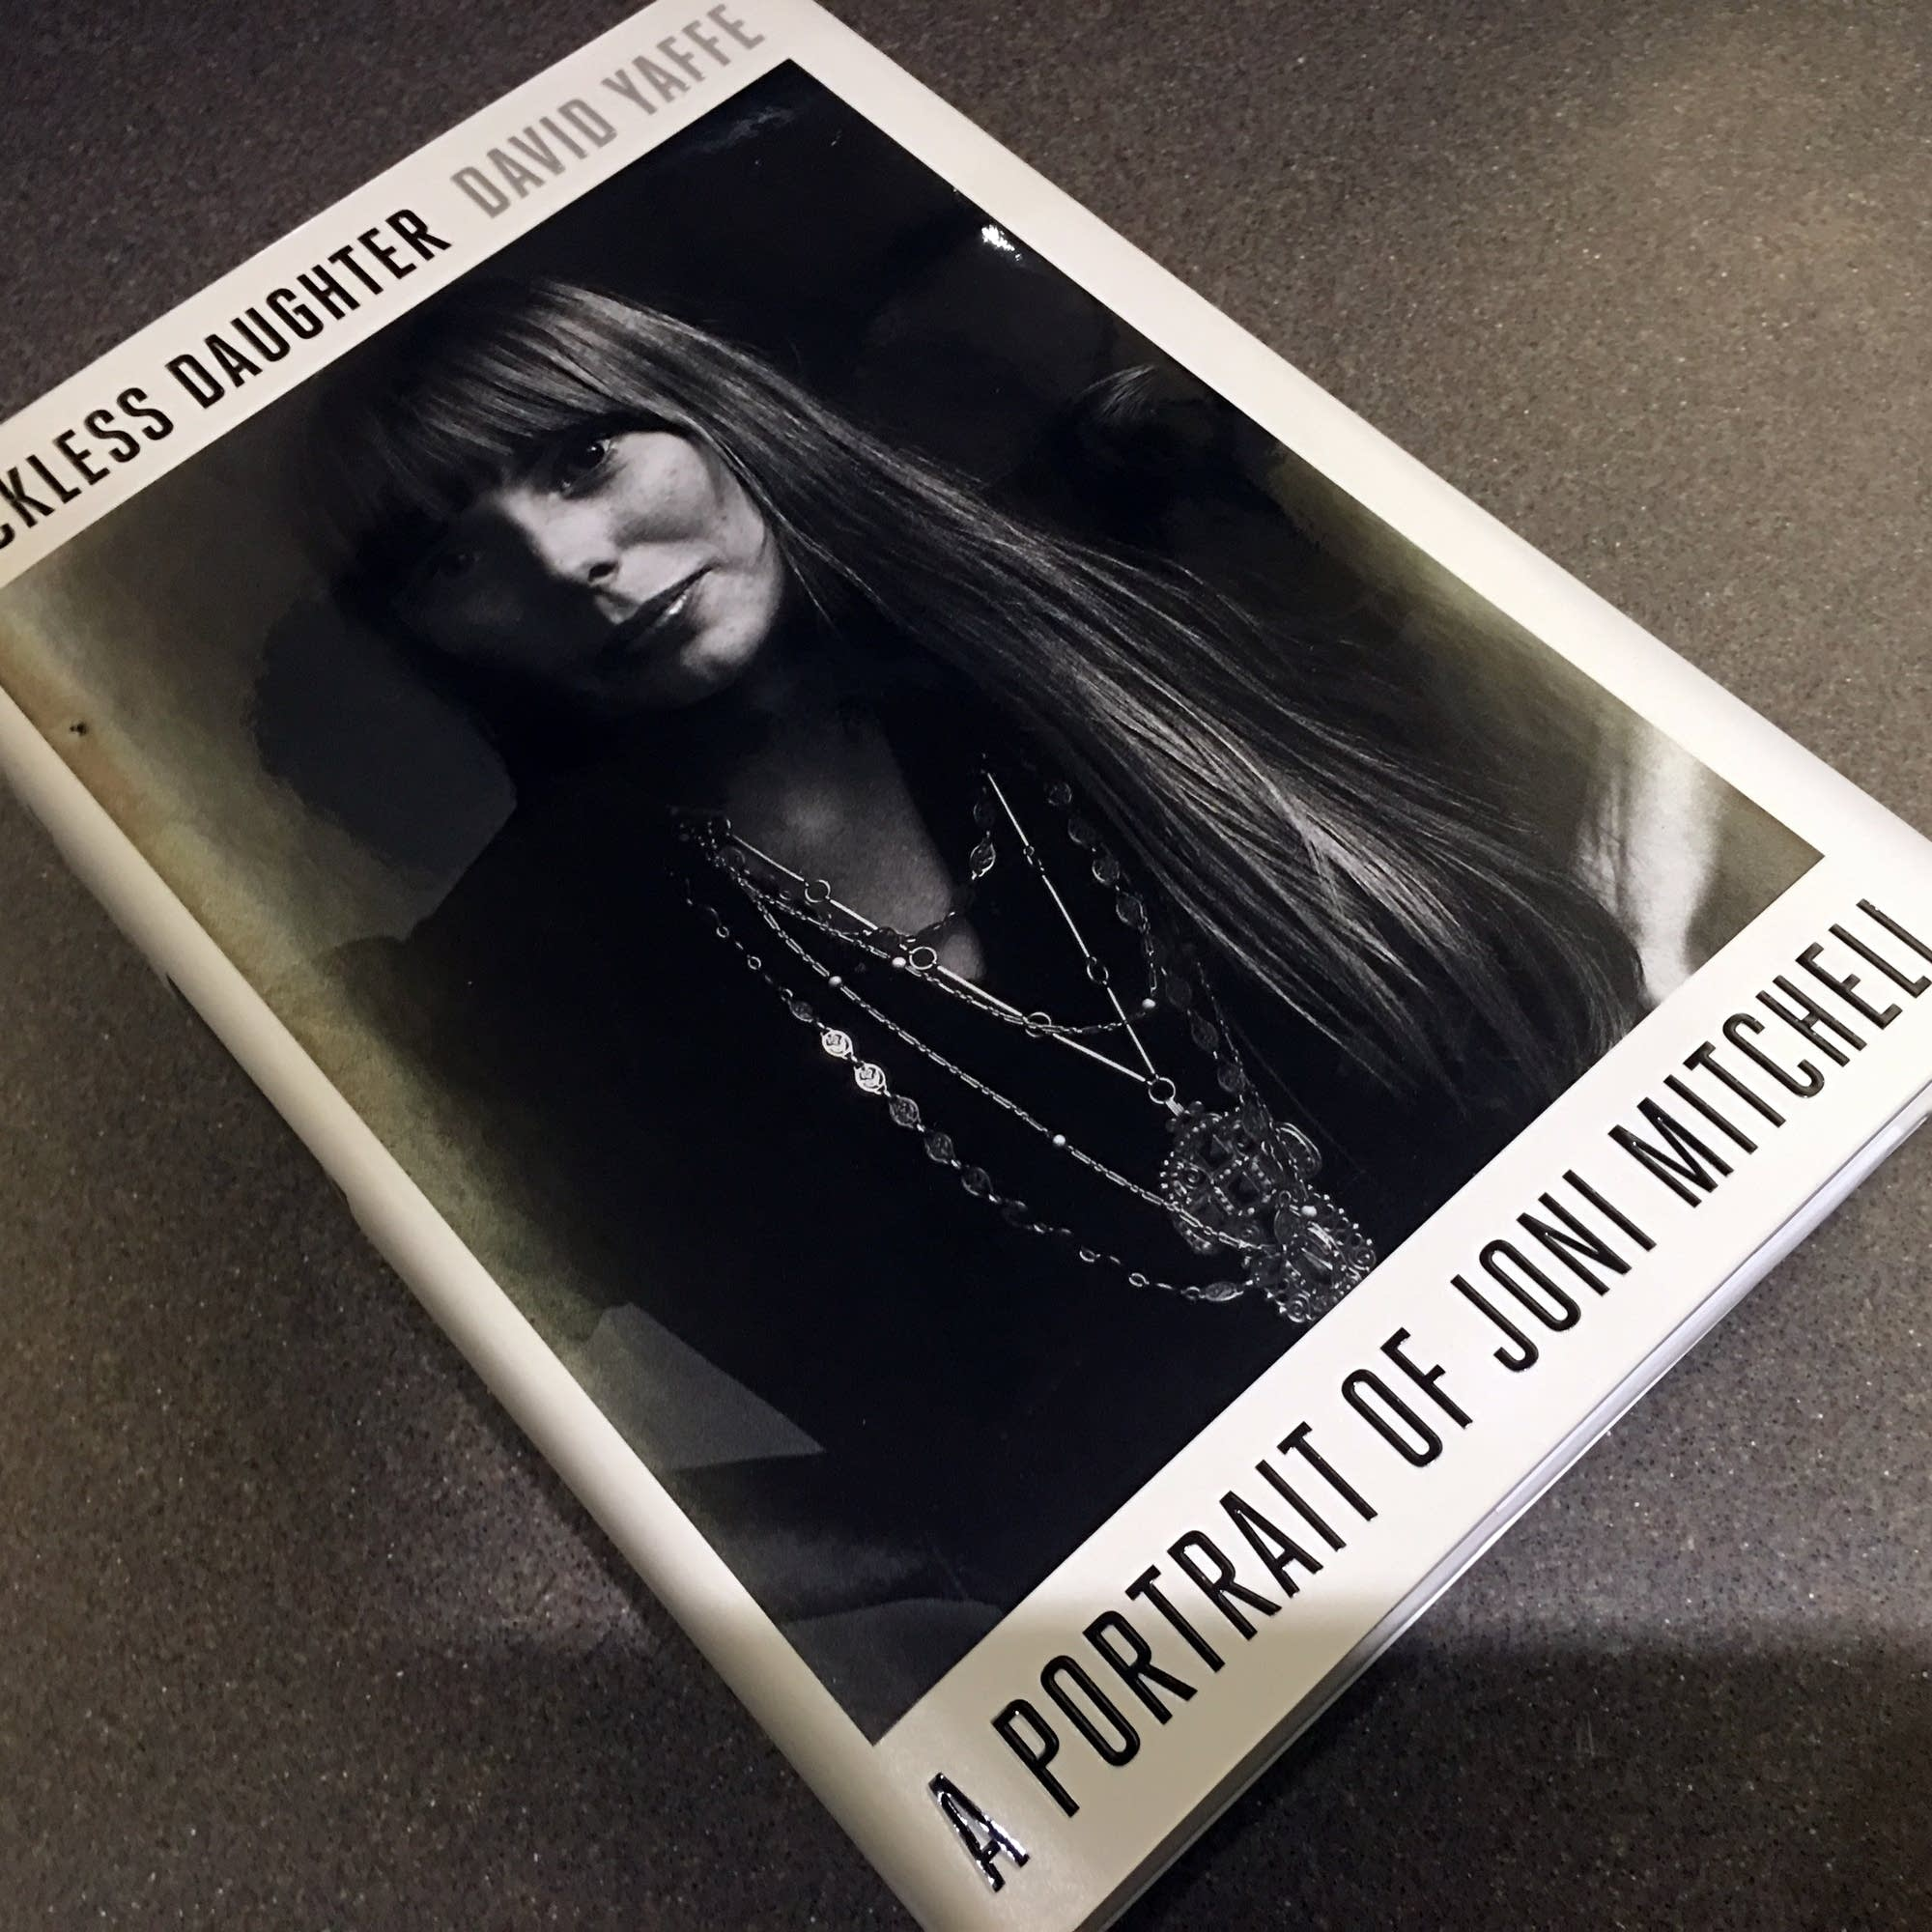 David Yaffe's 'Reckless Daughter: A Portrait of Joni Mitchell.'